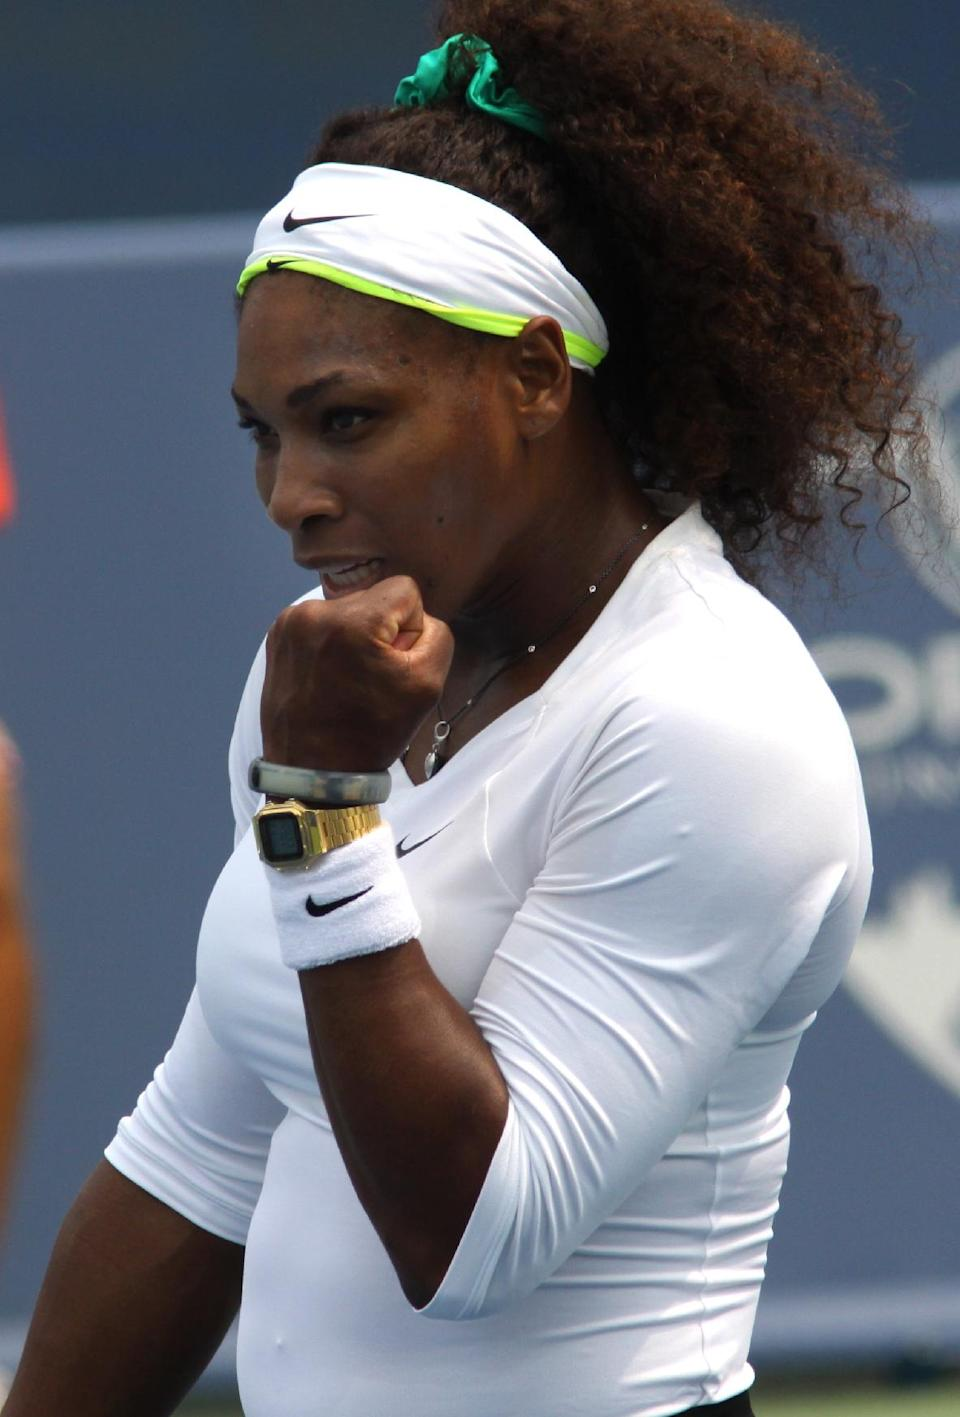 Serena Williams, of the United, reacts after beating Urszula Radwanska, of Poland, after a match at the Western & Southern Open tennis tournament, Thursday, Aug. 16, 2012, in Mason, Ohio. (AP Photo/Tom Uhlman)